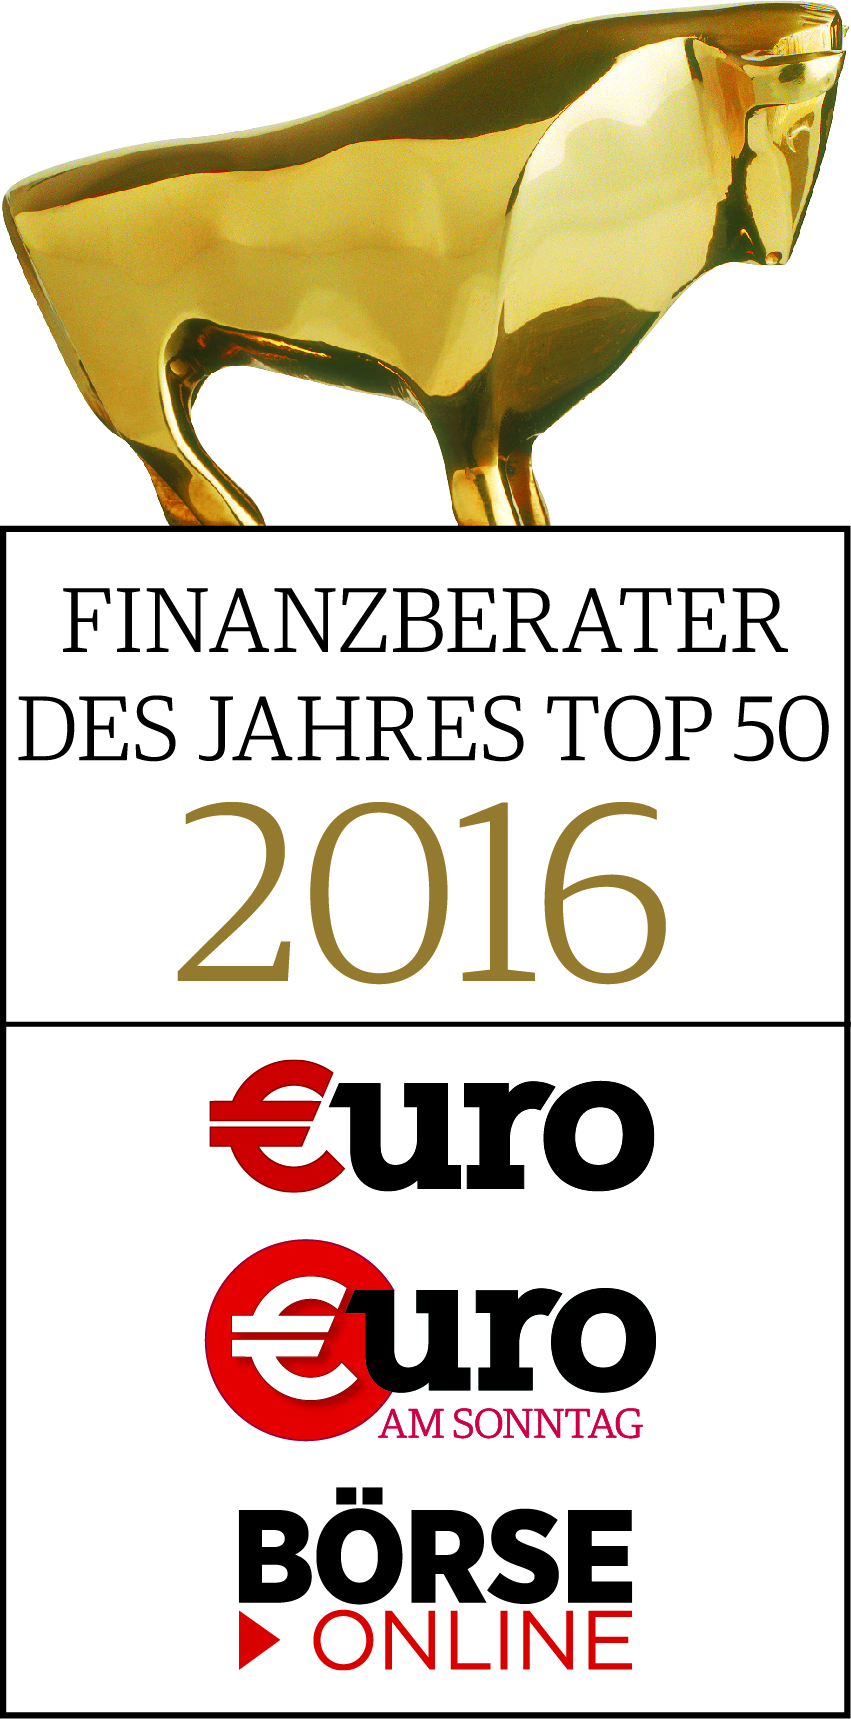 finanzberater top50 2016